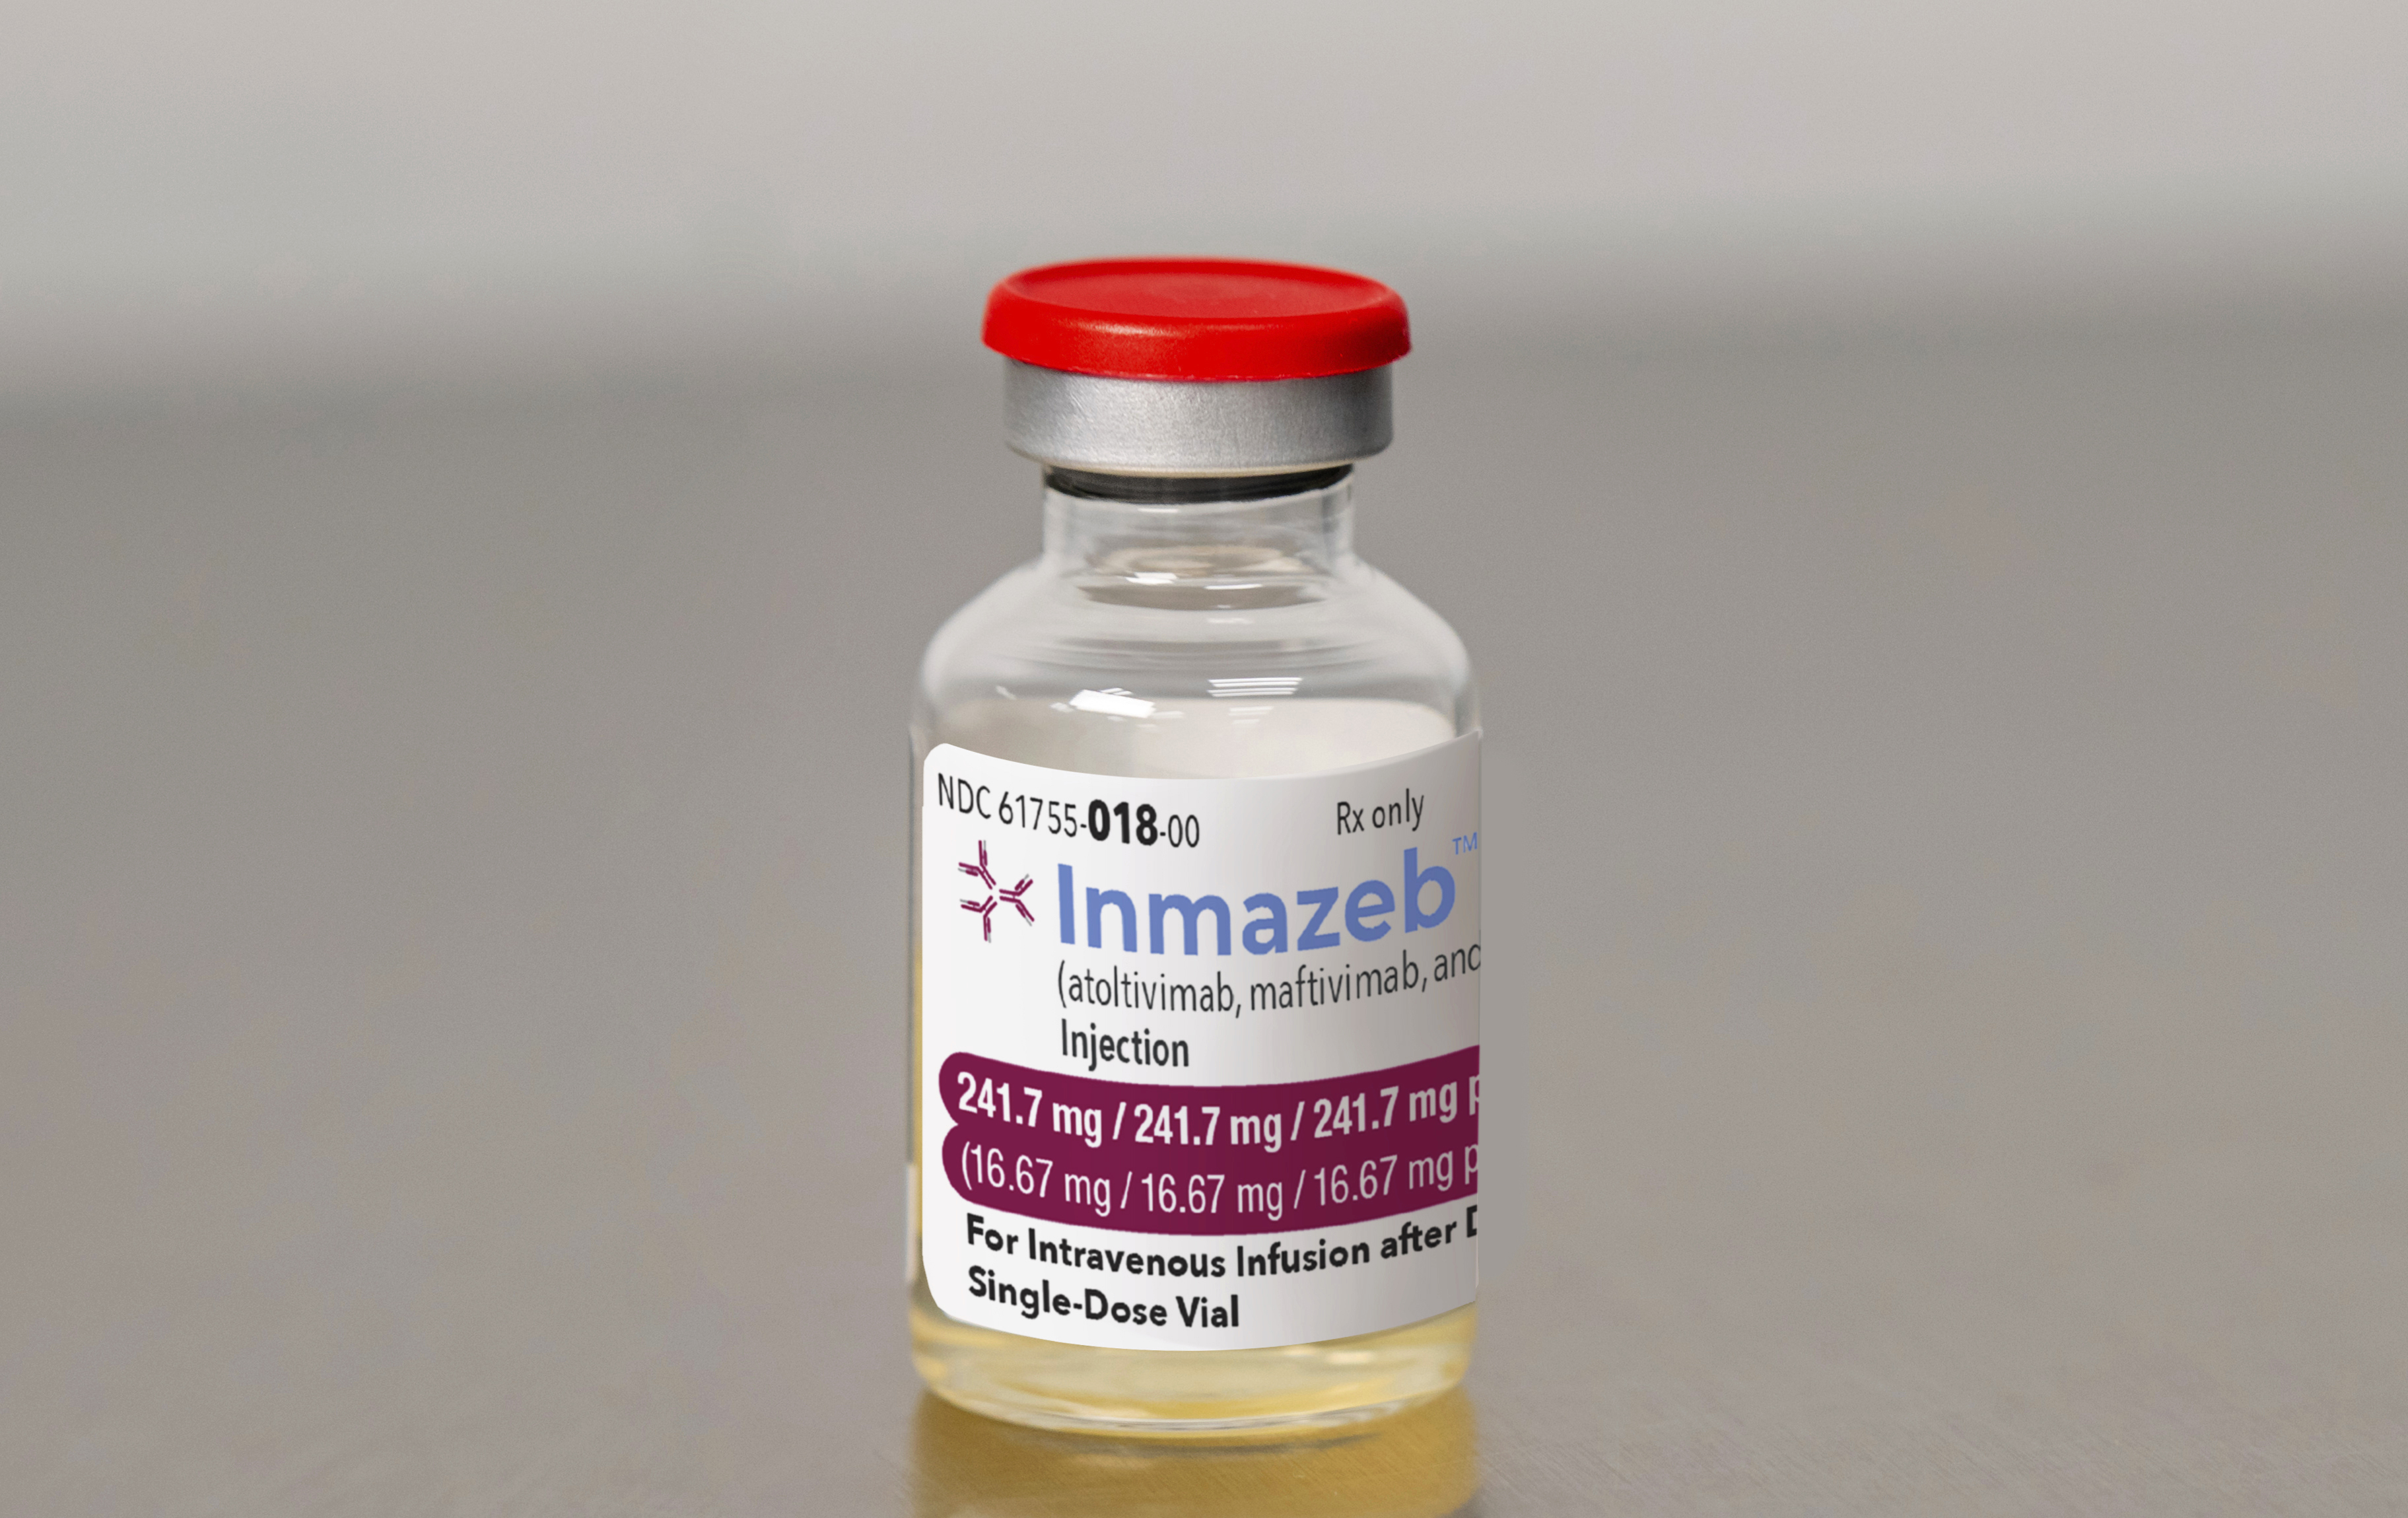 This image provided by Regeneron on Wednesday, Oct. 14, 2020, shows a vial of the company's Inmazeb medication. On Wednesday, the U.S. Food and Drug Administration said it has approved the drug for treating Ebola in both adults and children.